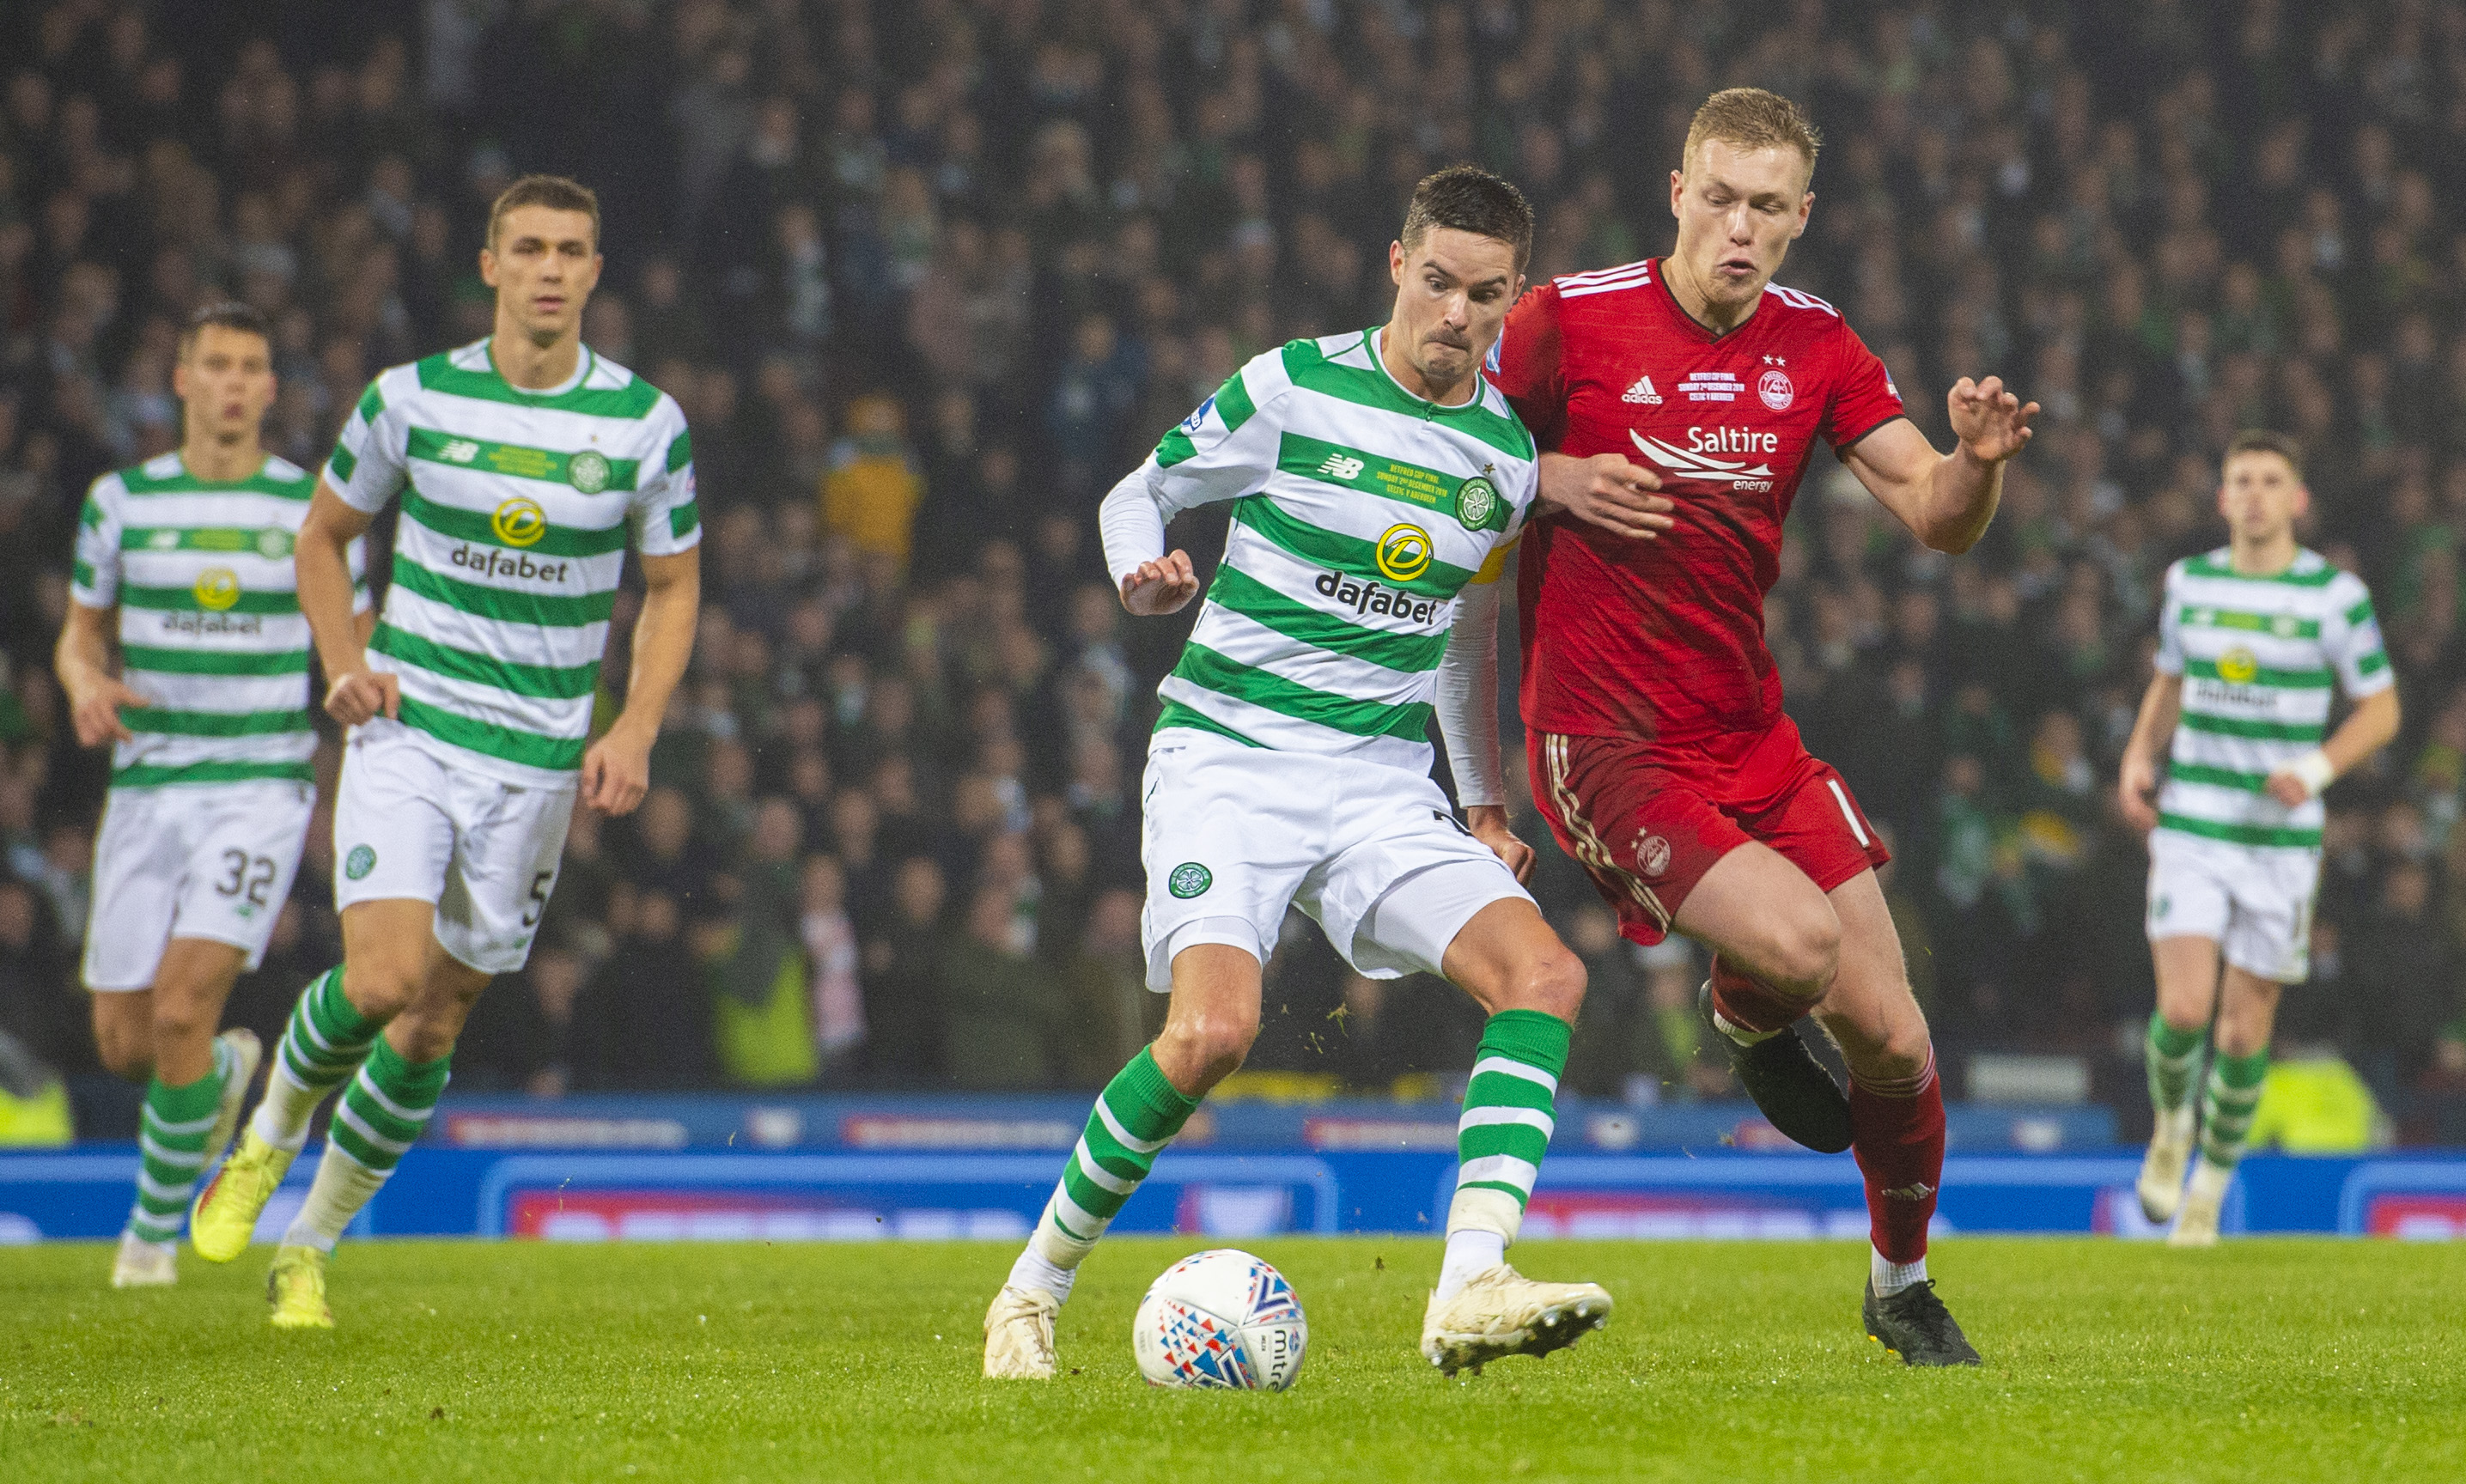 Celtic's Mikael Lustig, left, holds off Aberdeen's Sam Cosgrove.